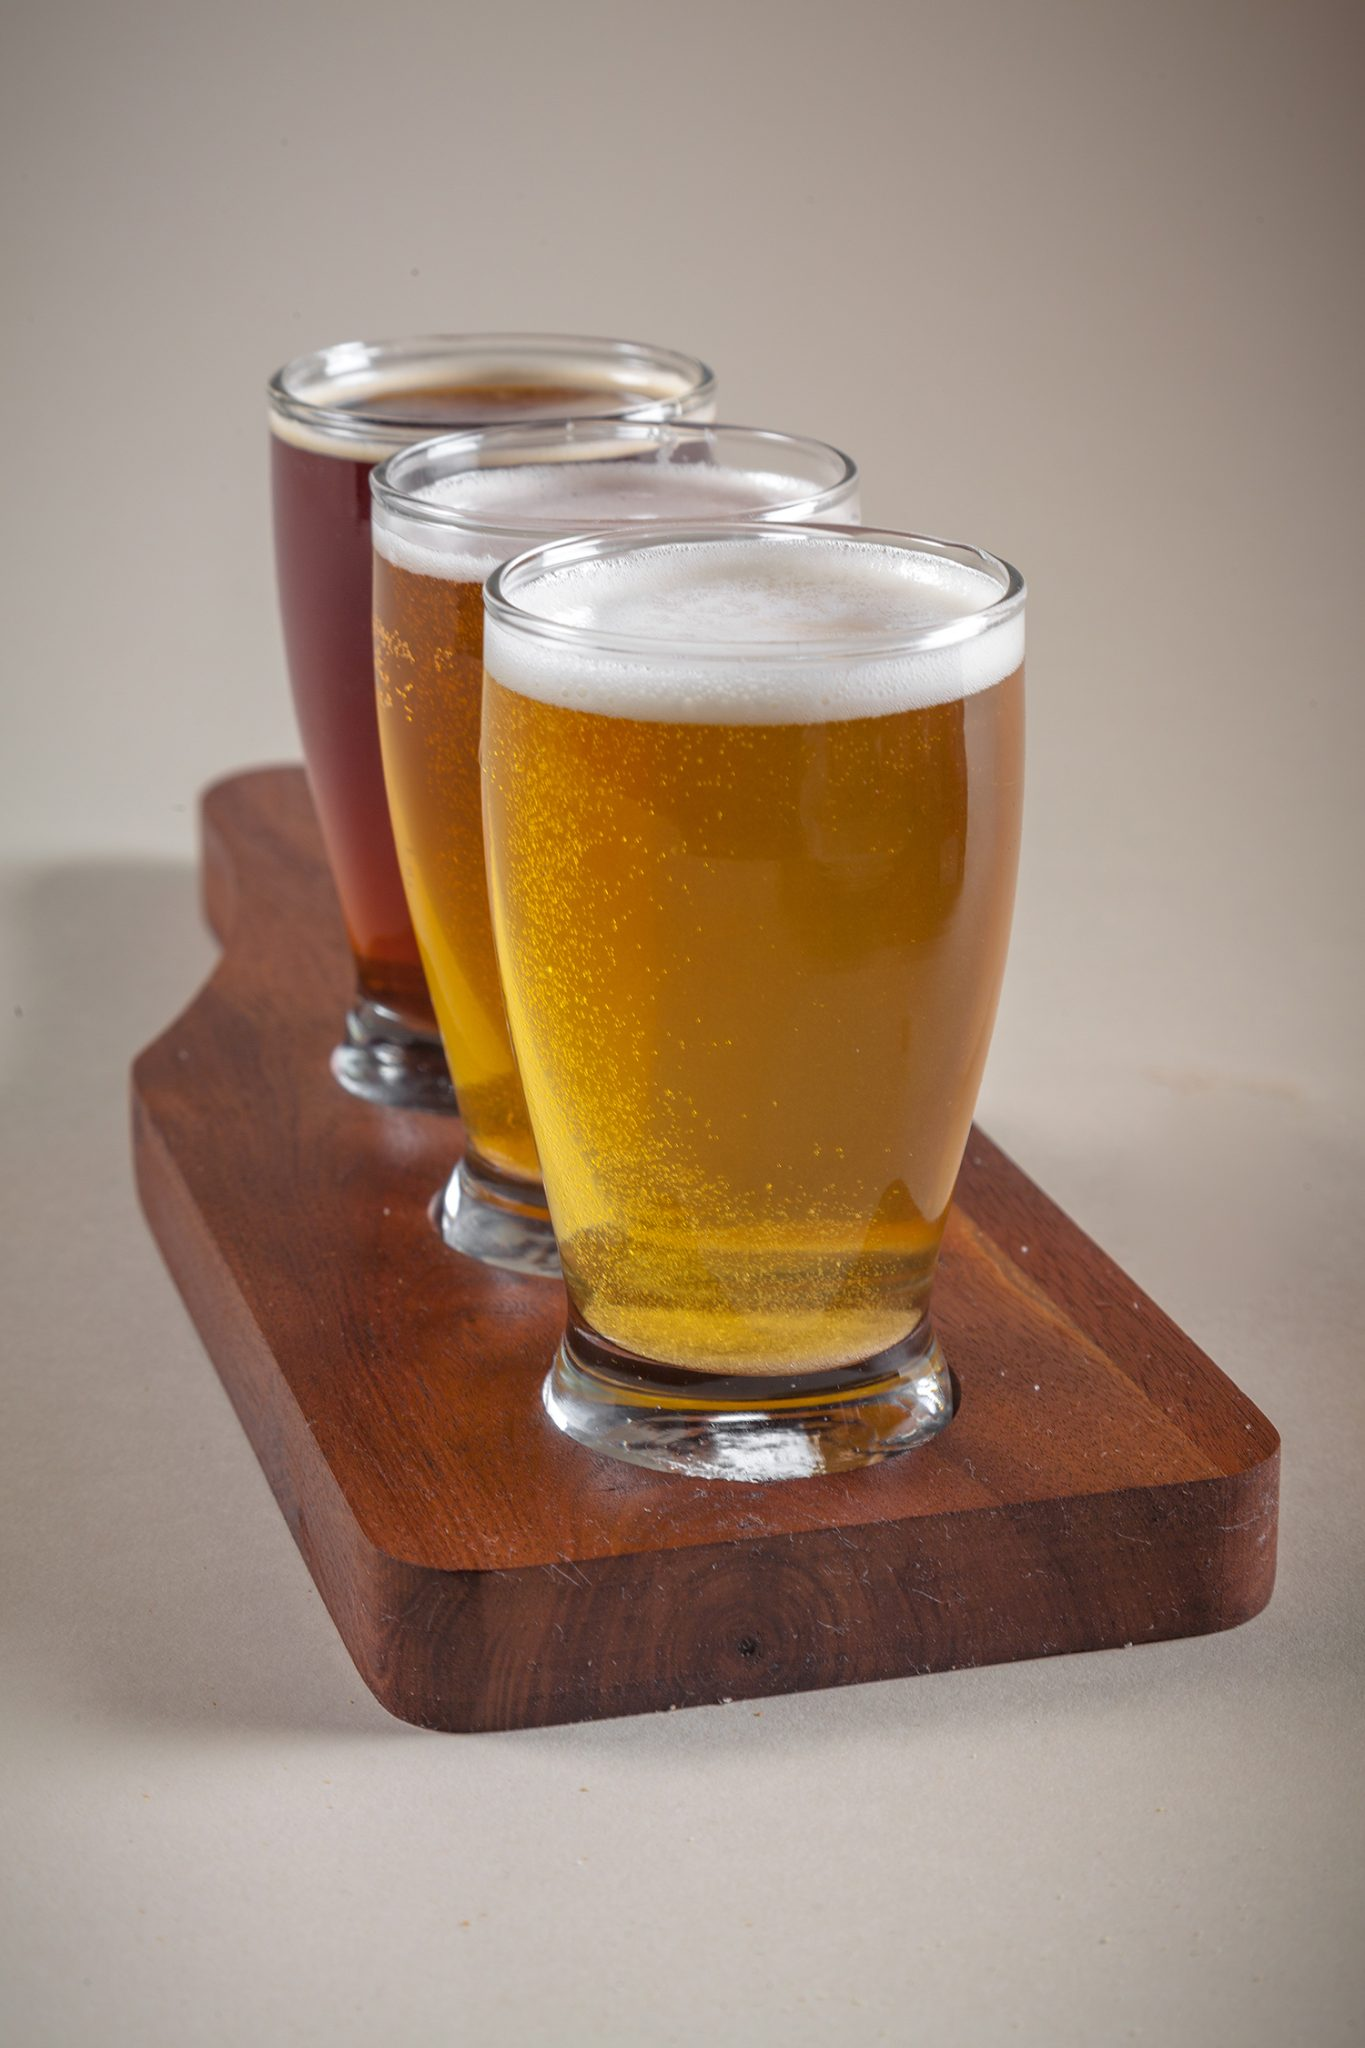 custom beer flight paddles with three beer glasses